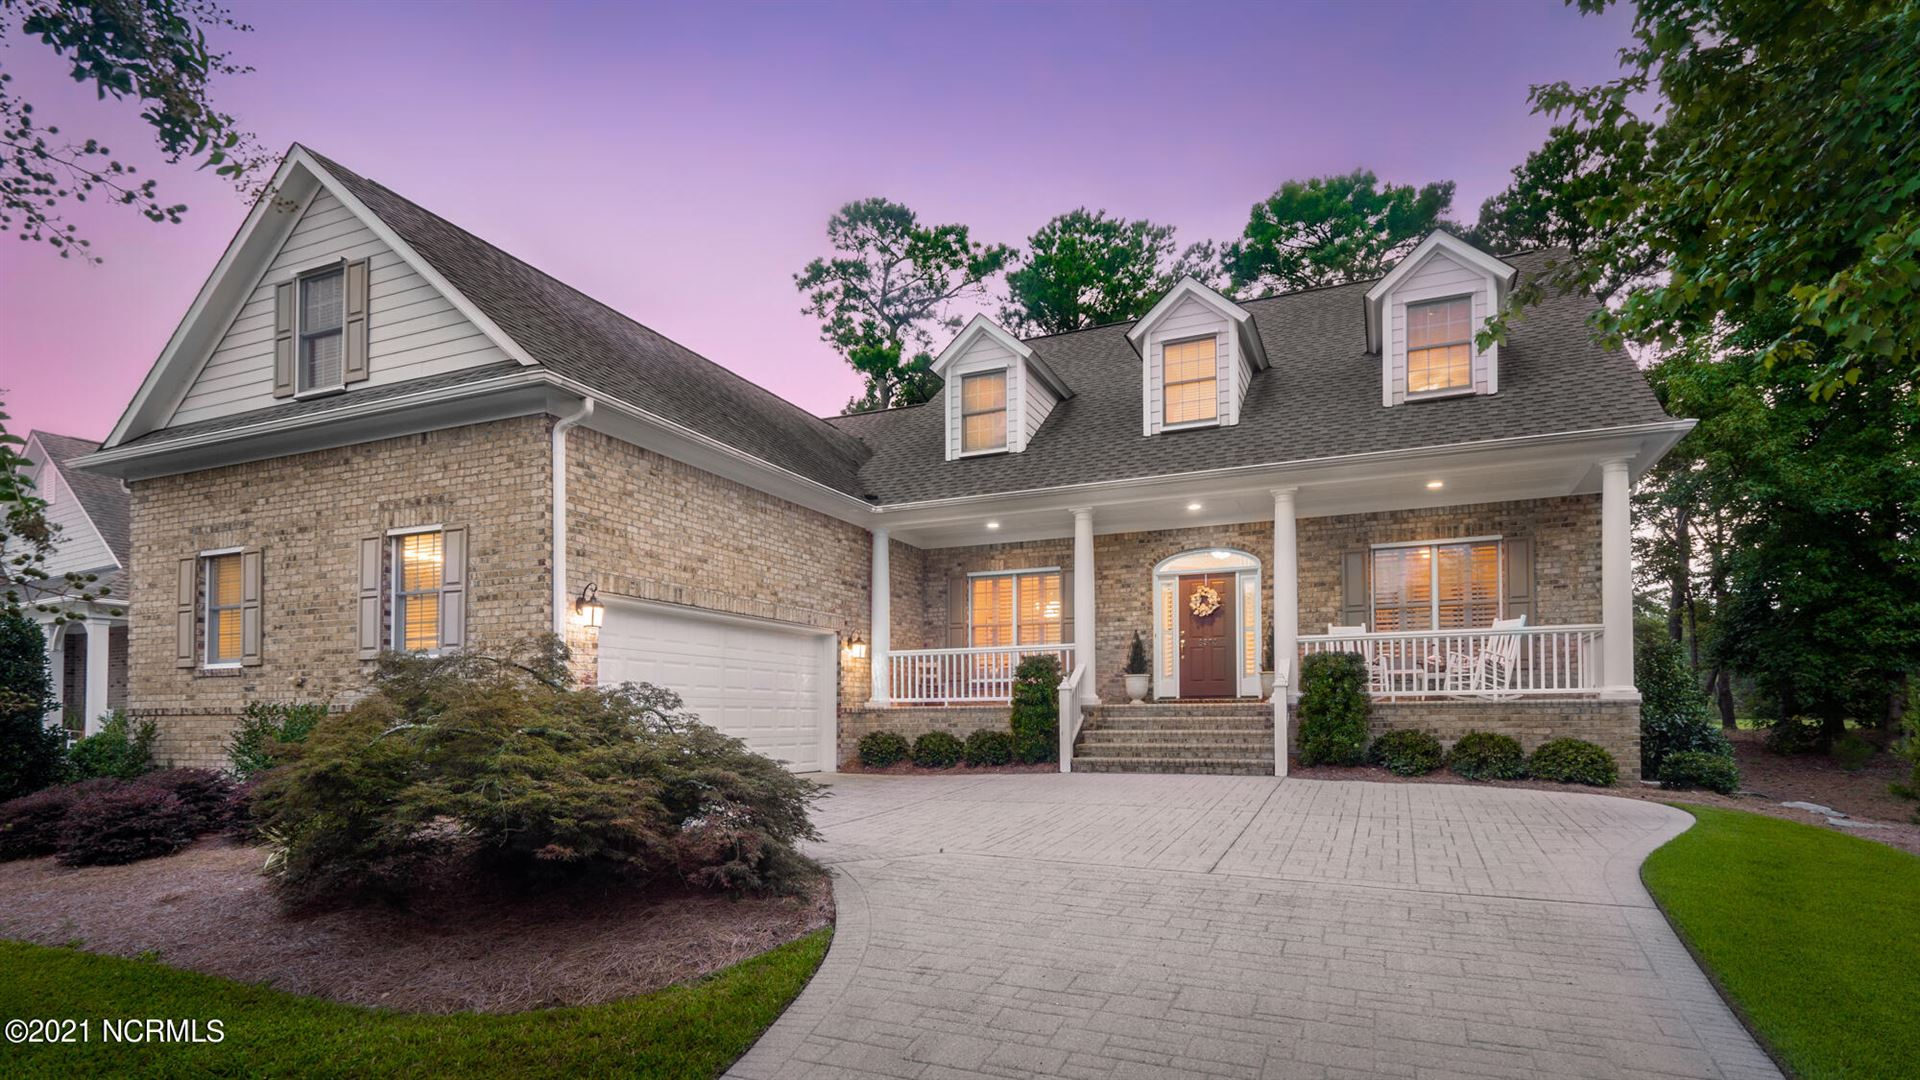 Photo of 8574 Galloway National Drive, Wilmington, NC 28411 (MLS # 100292188)